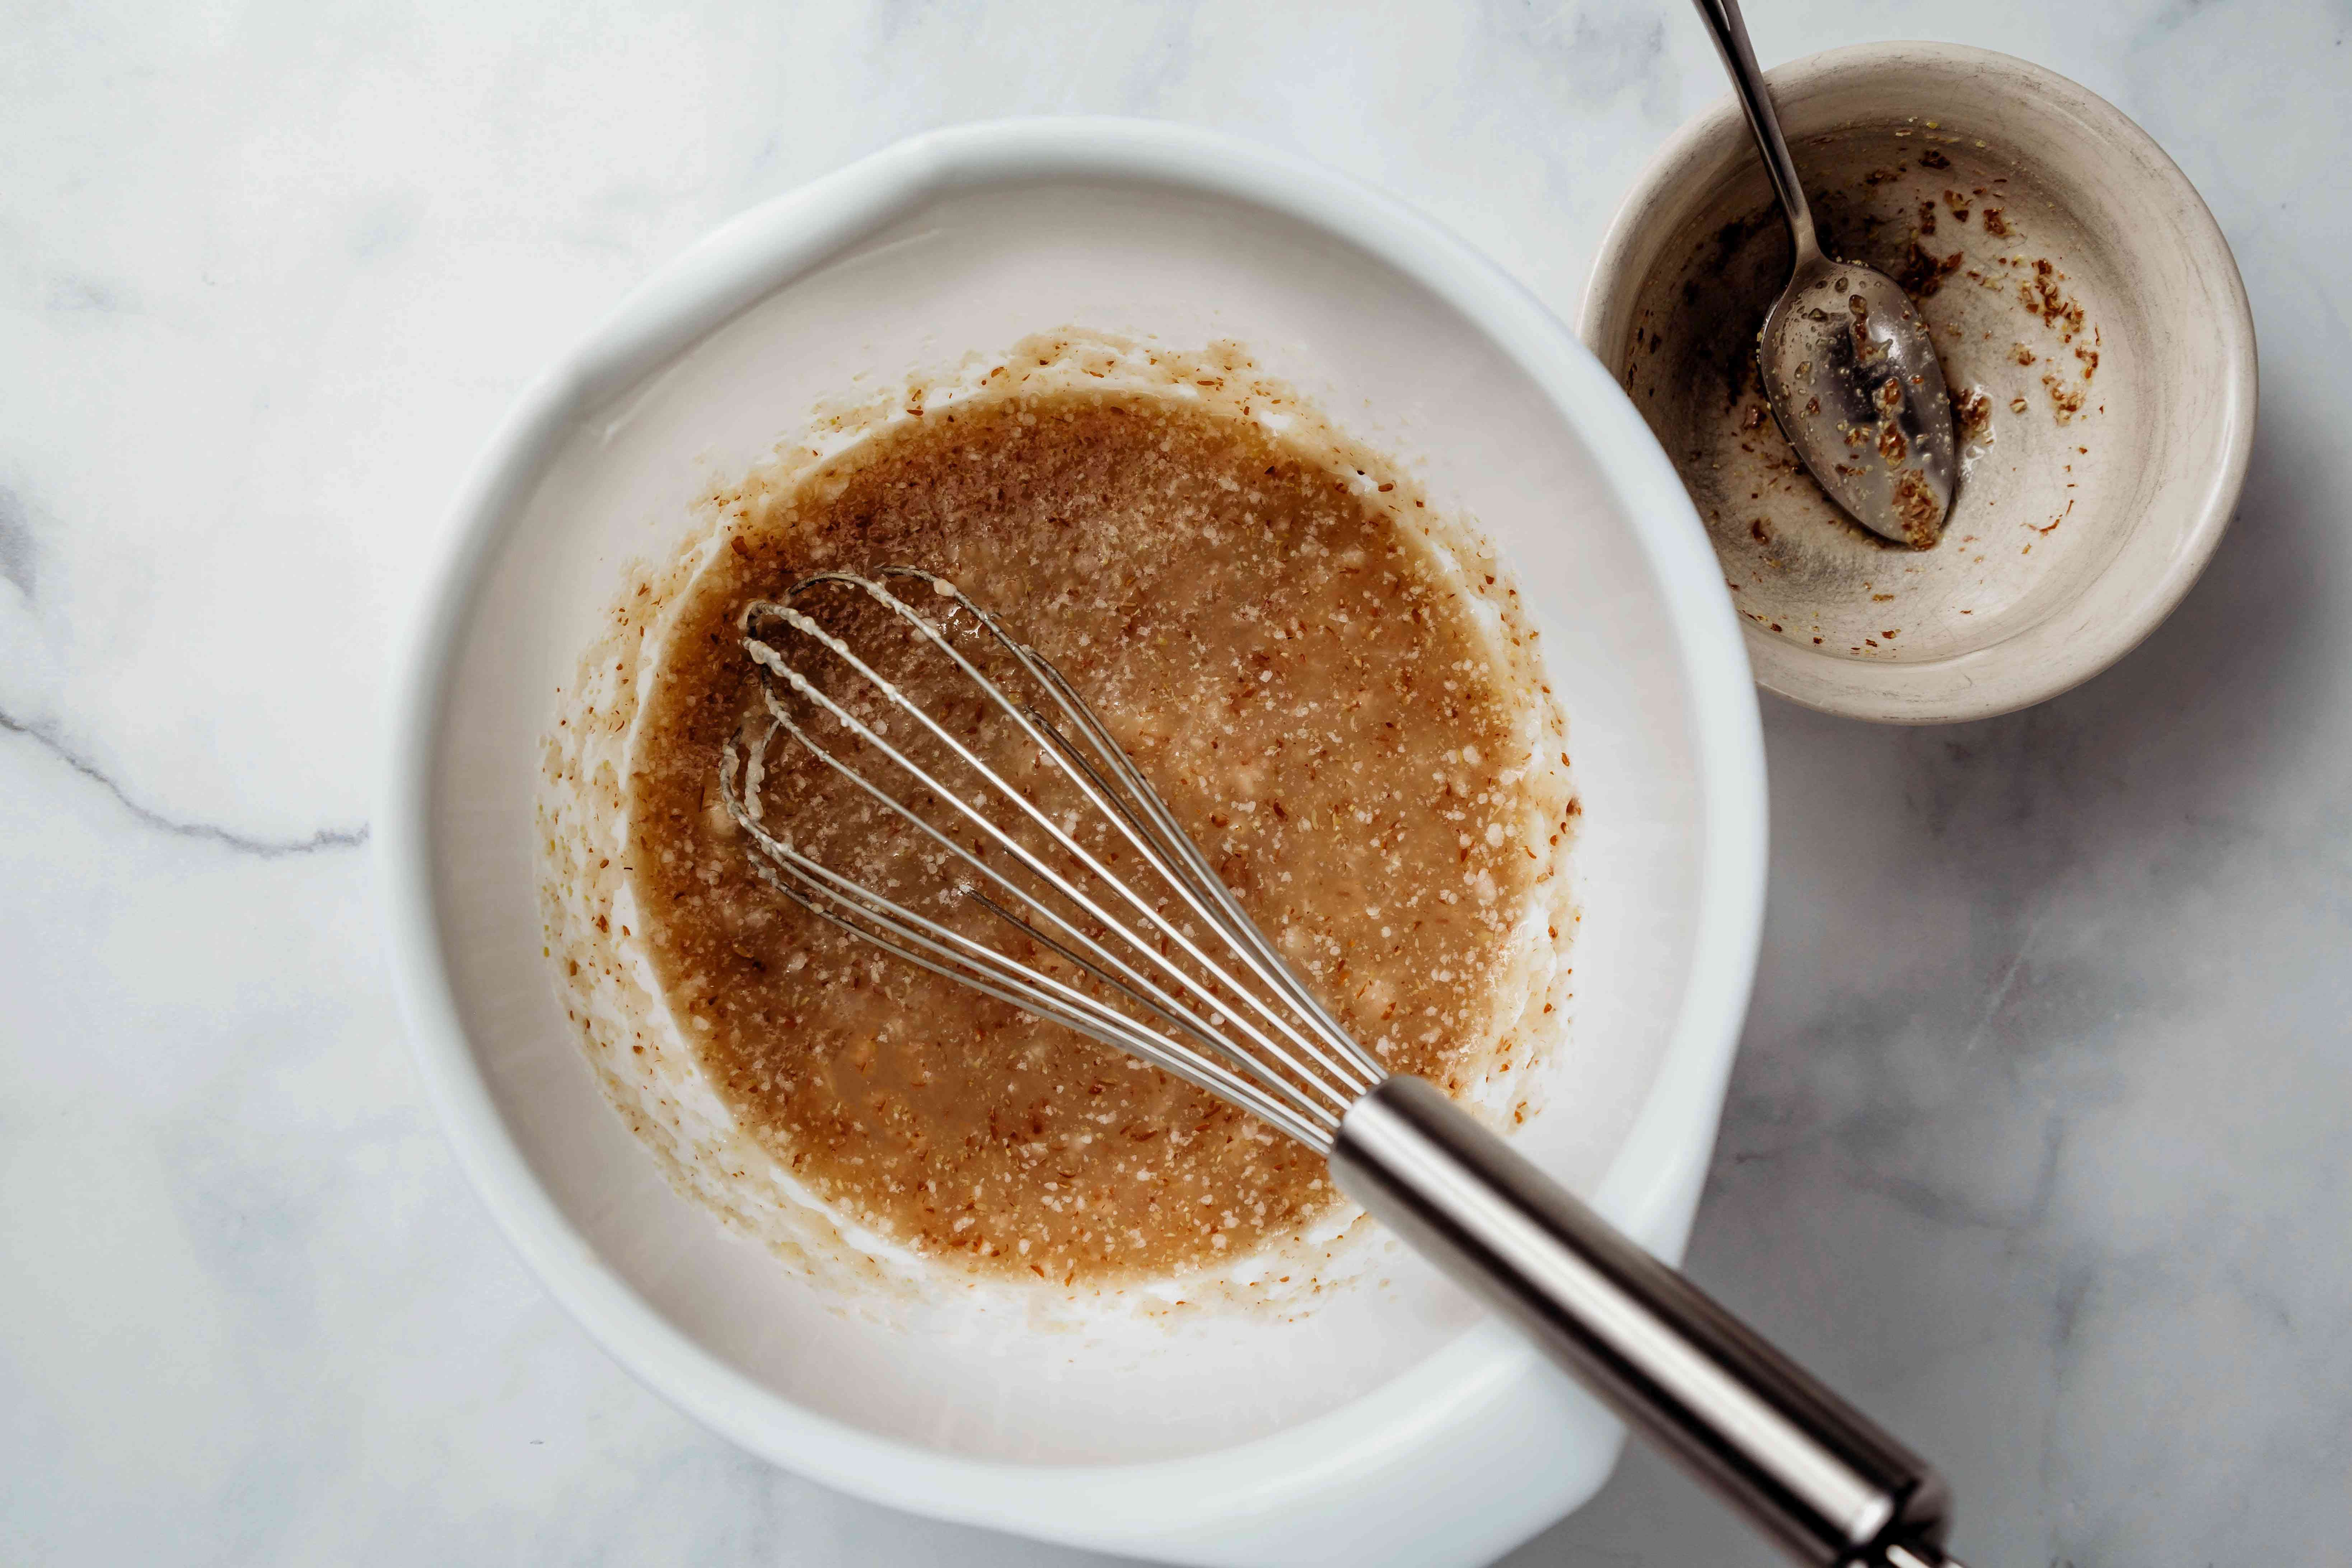 Whisk the hydrated flax mixture into the applesauce mixture